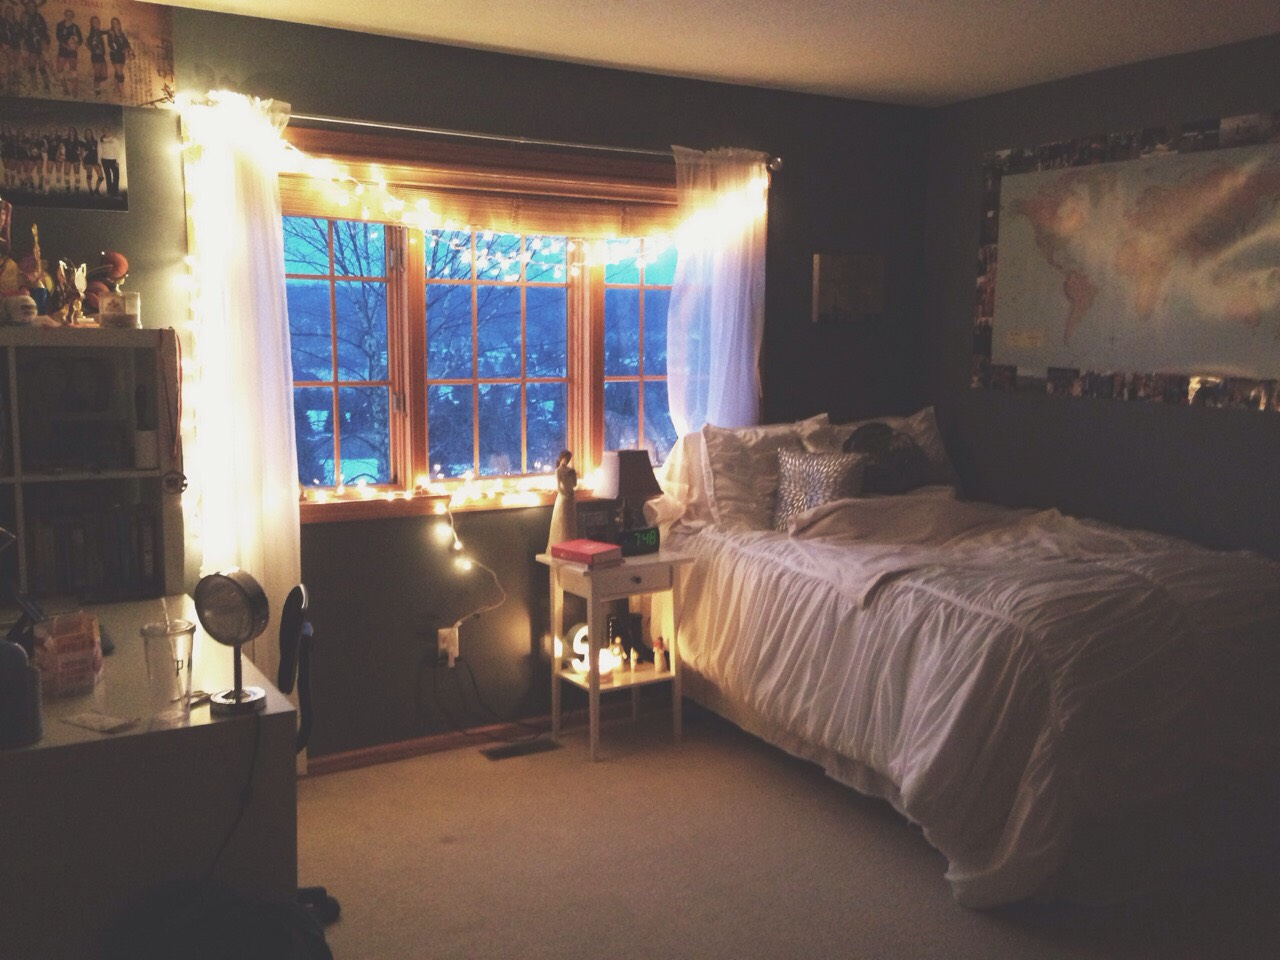 See... A simple room with Fairy lights can be extraordinary.